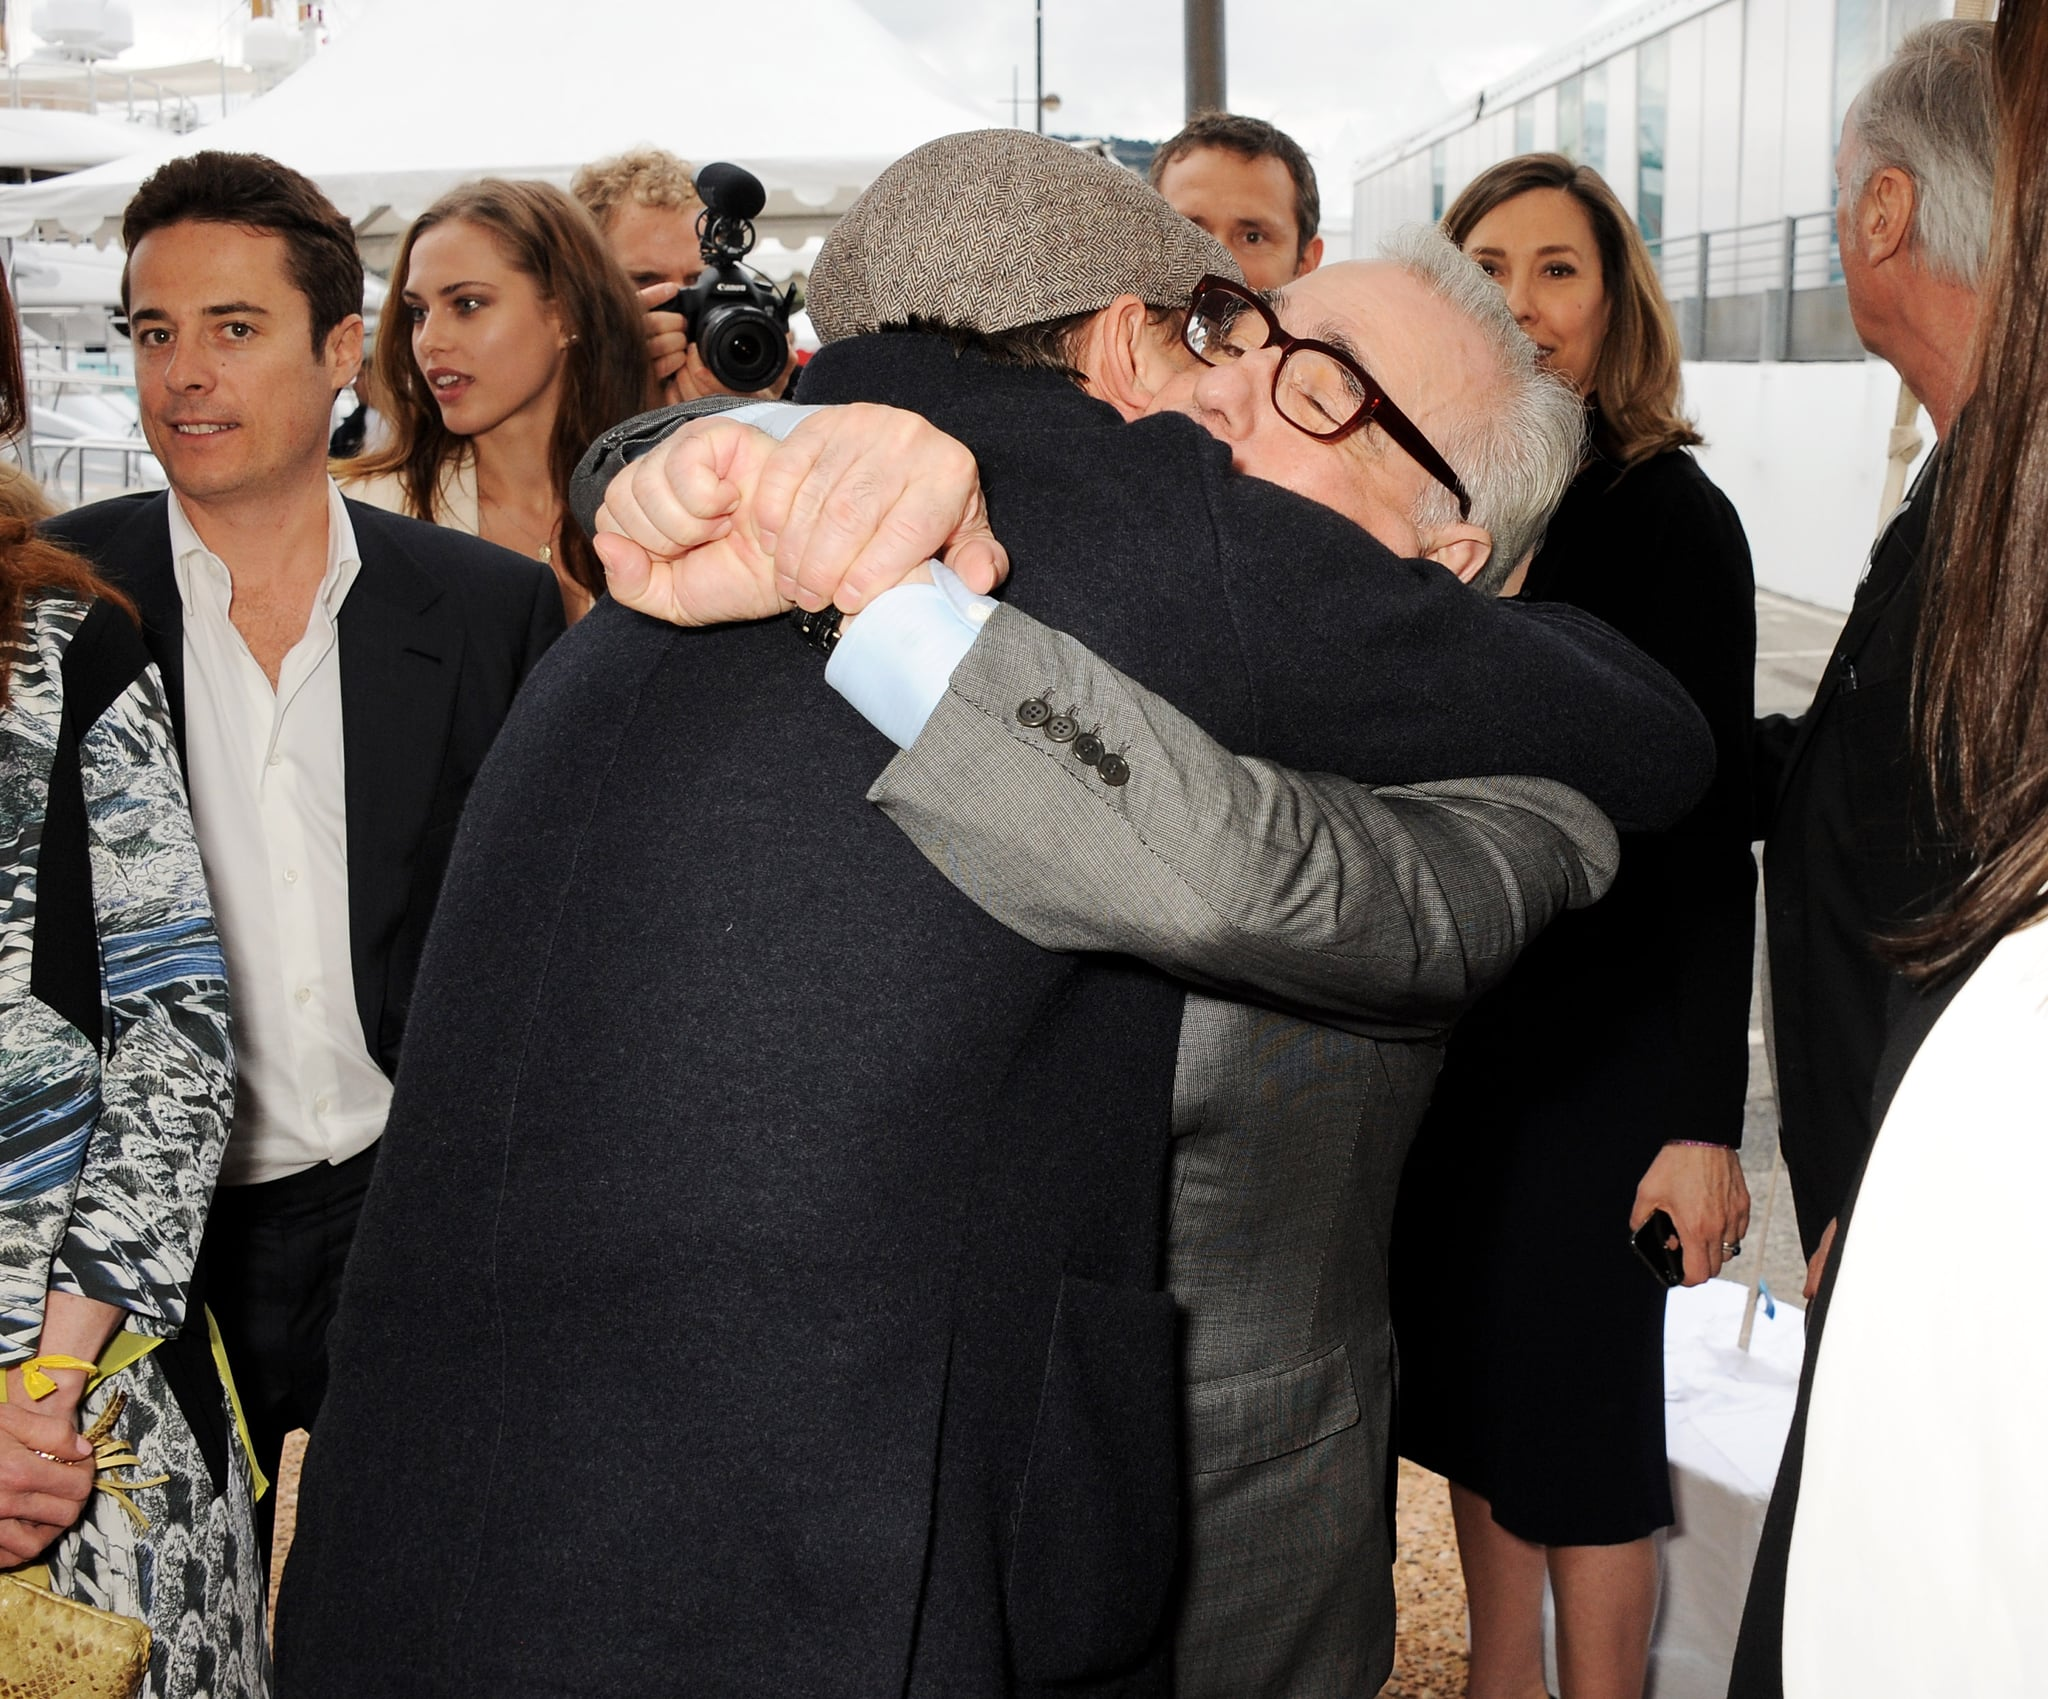 Leonardo DiCaprio hugged Martin Scorsese at a special event for Silence.